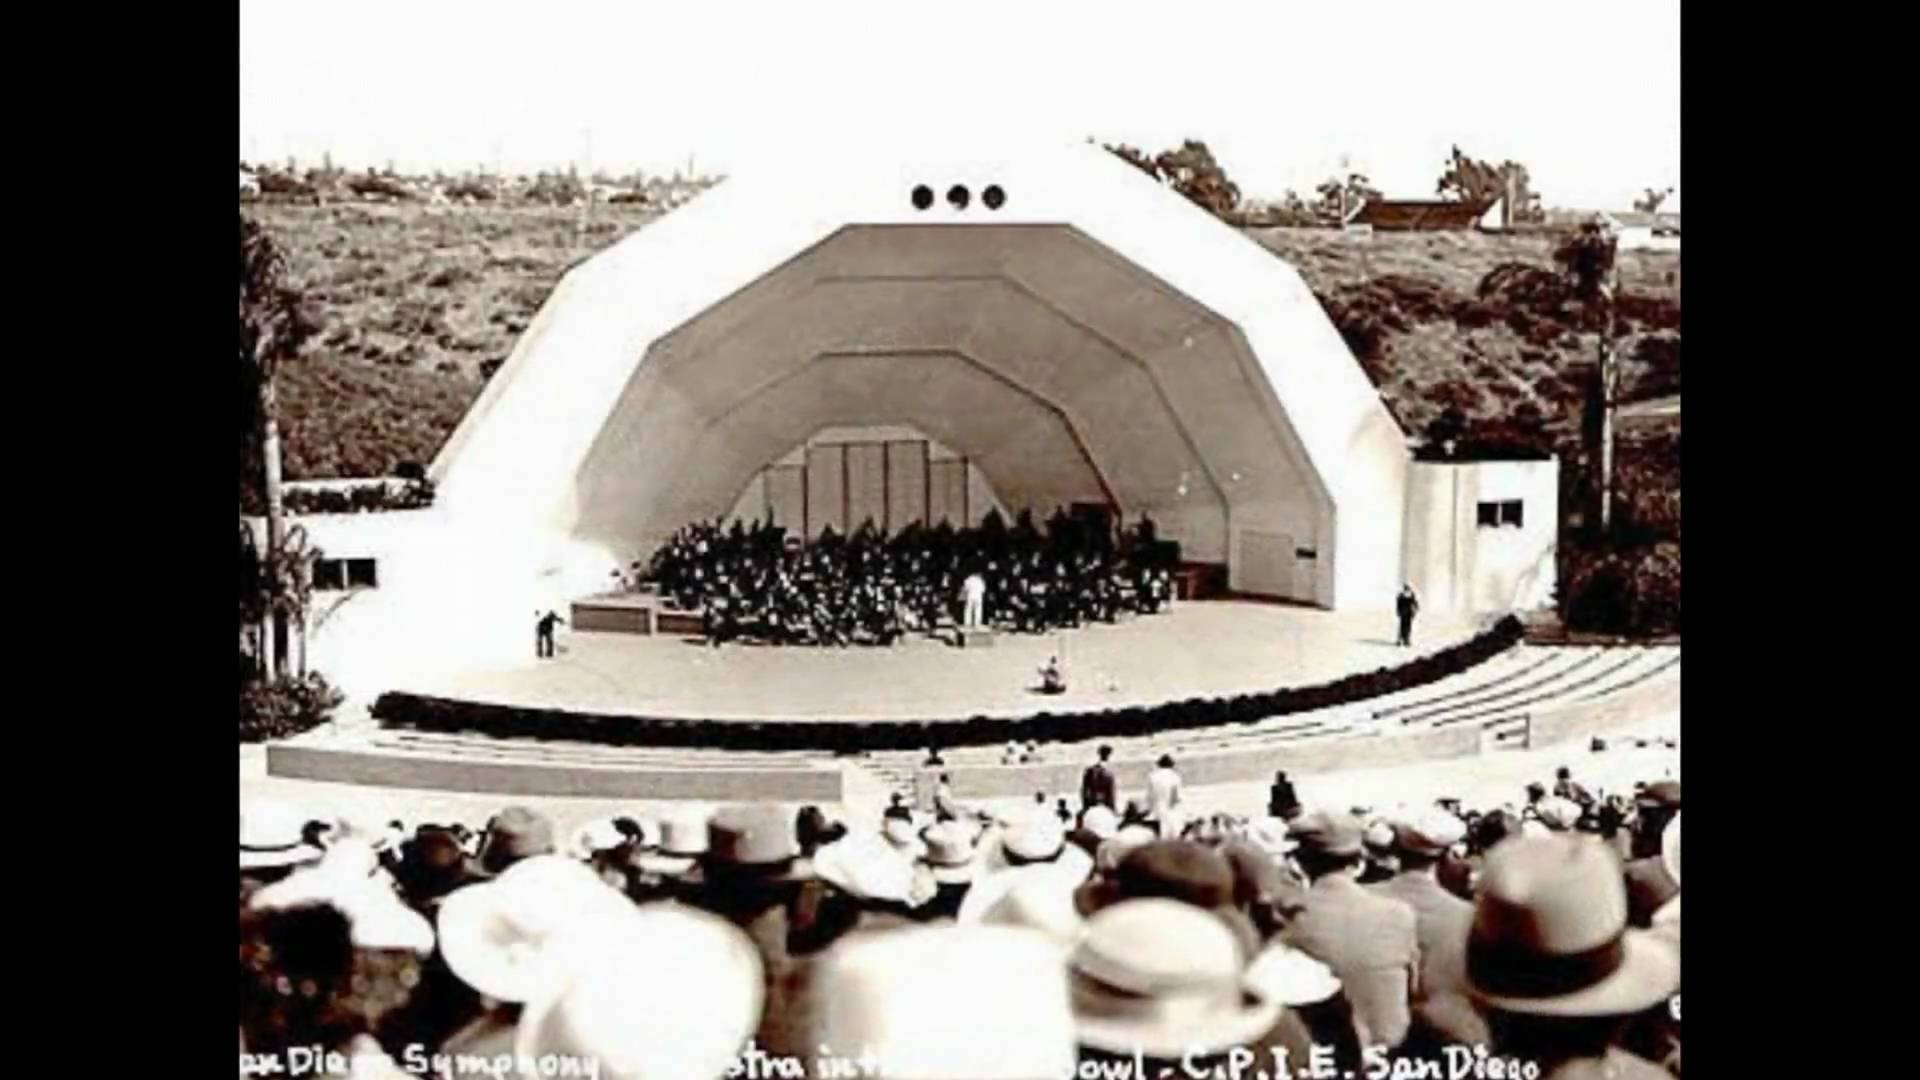 Torrey Pines State Beach and Reserve San Diego, Starlight Musical Theatre - A San Diego Tradition - YouTube